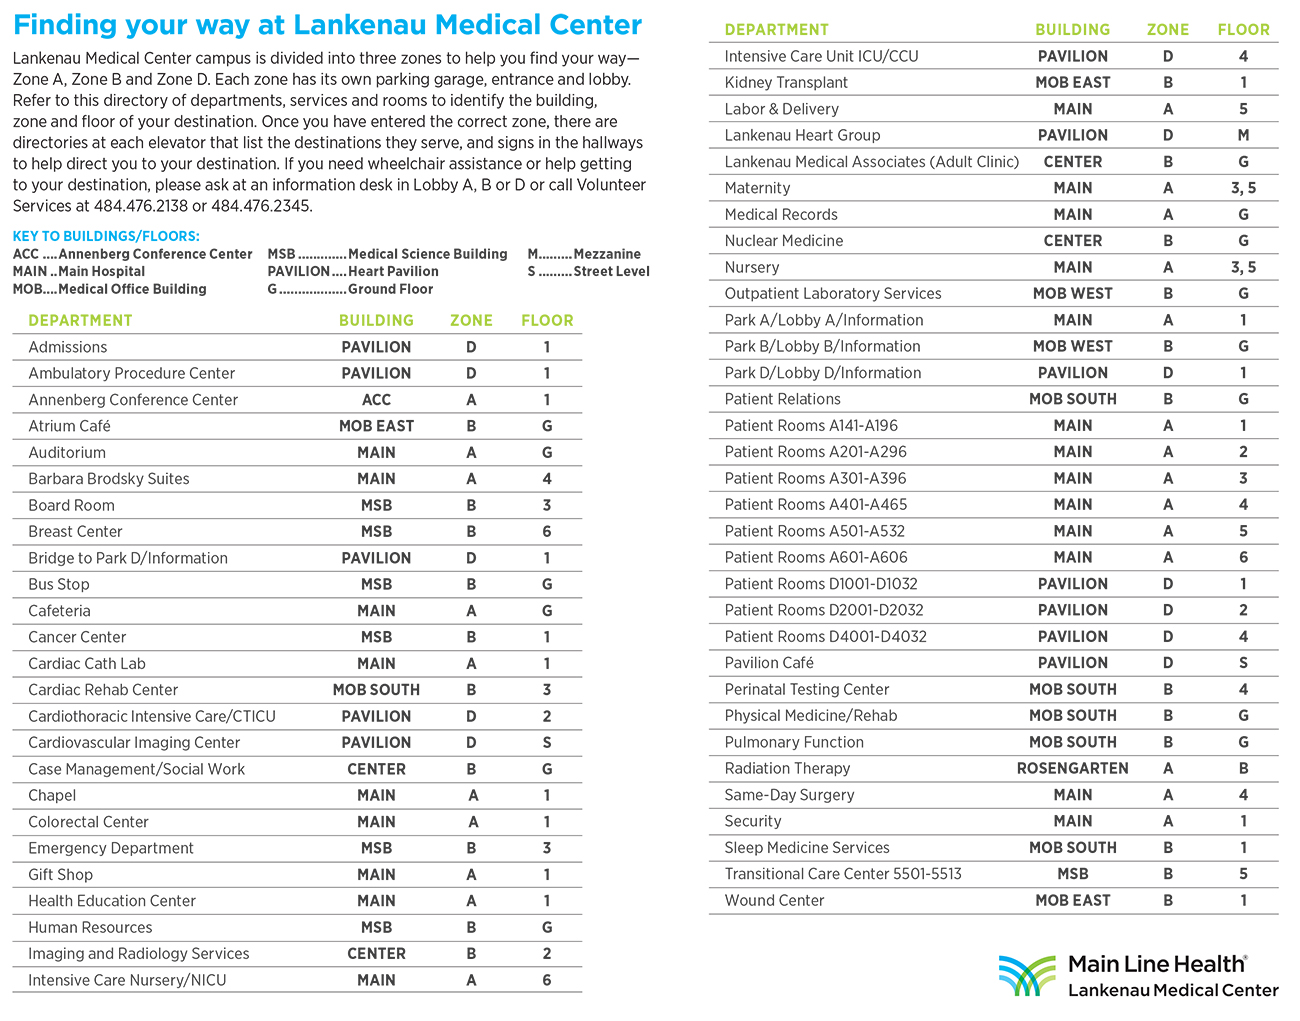 Campus Map Lankenau Medical Center Locations Main Line Health